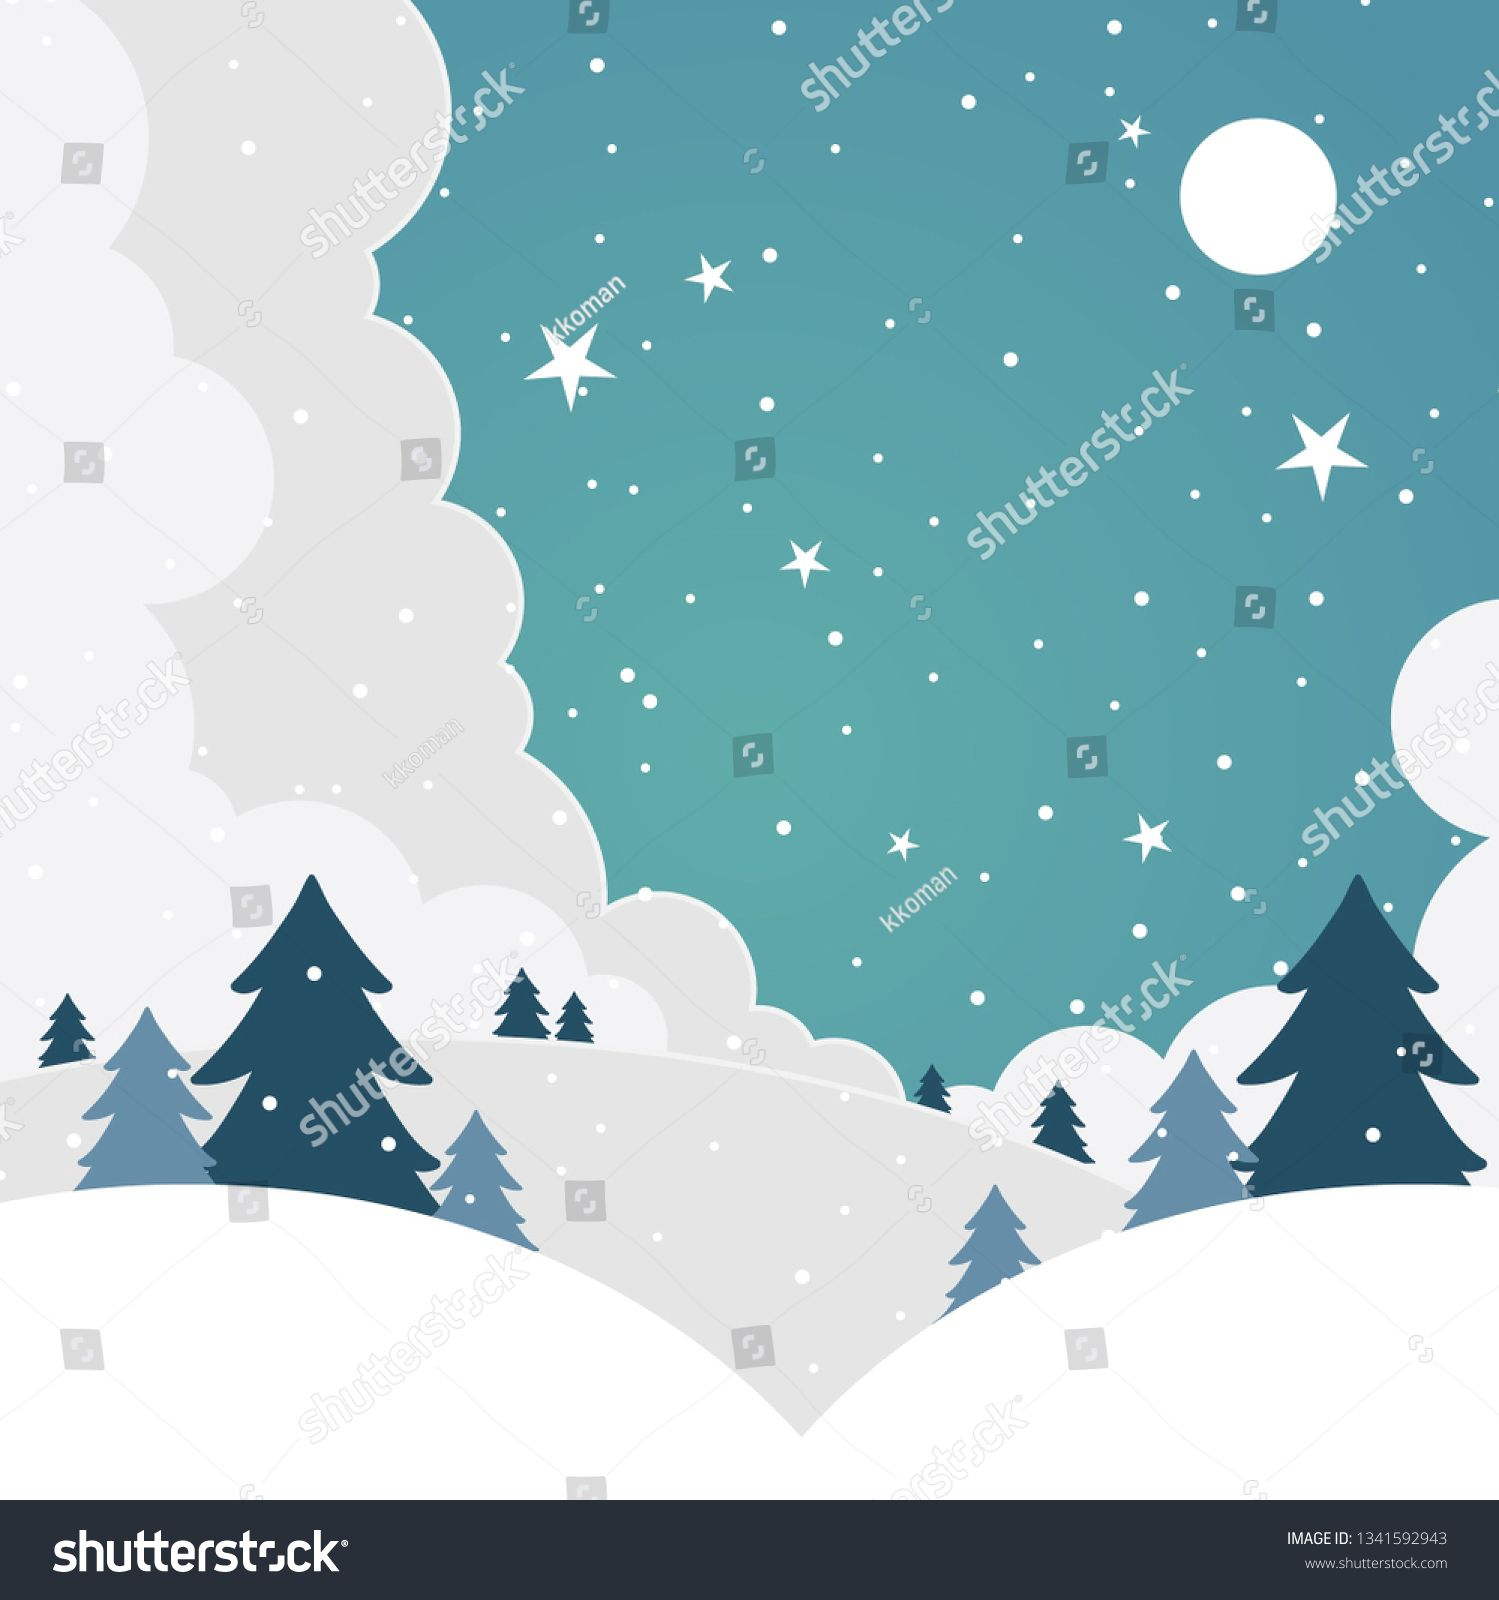 Winter Landscape With Forest And Snowfall At Night Cartoon Christmas Trees In A Snow Holiday S Christmas Tree Background Winter Scenes Cartoon Christmas Tree